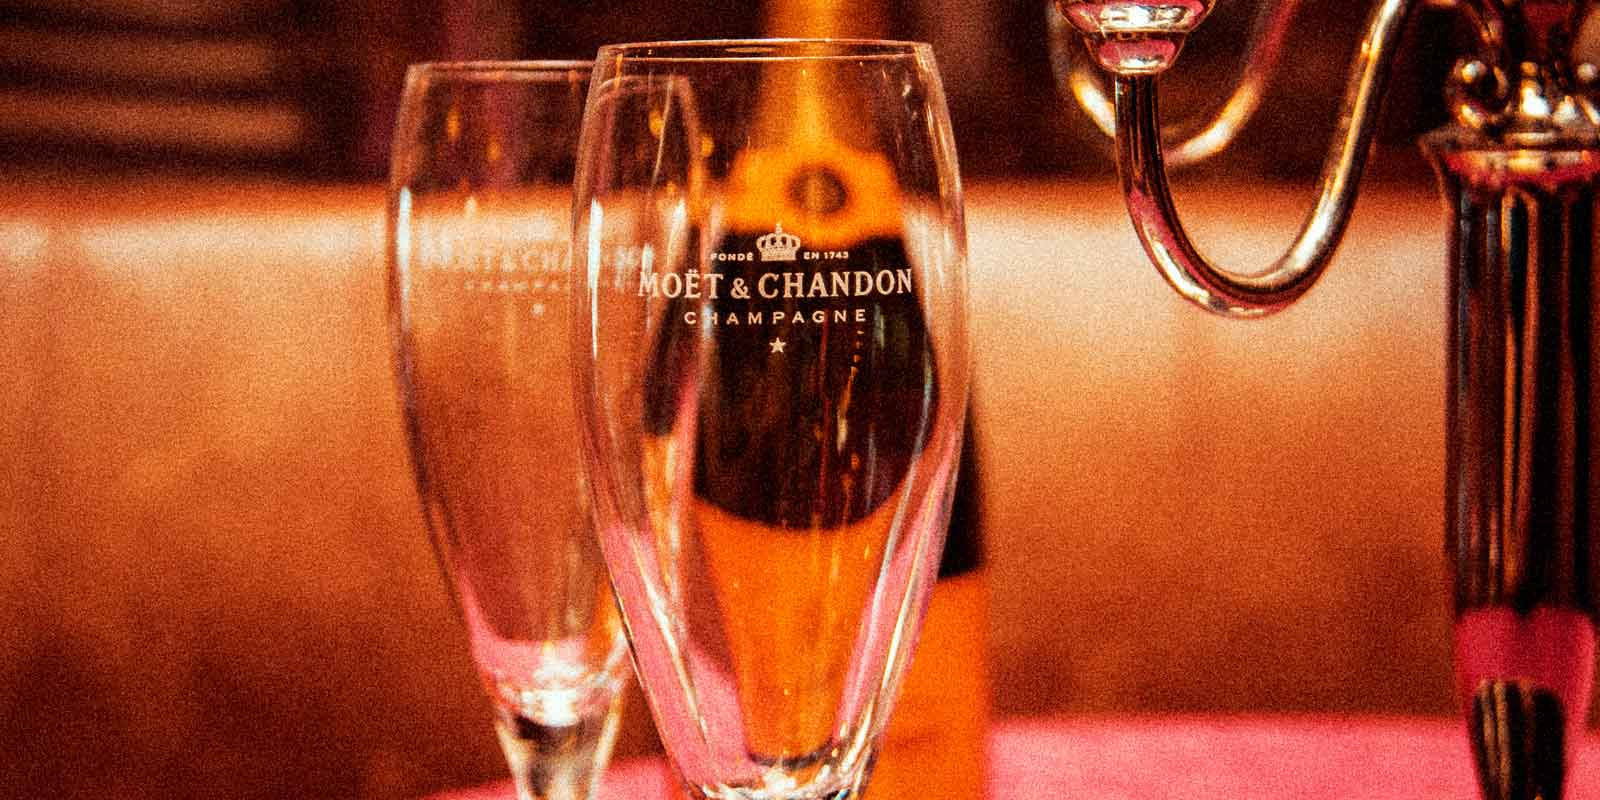 Closeup of 2 champagne glasses with the Moët & Chandon label.